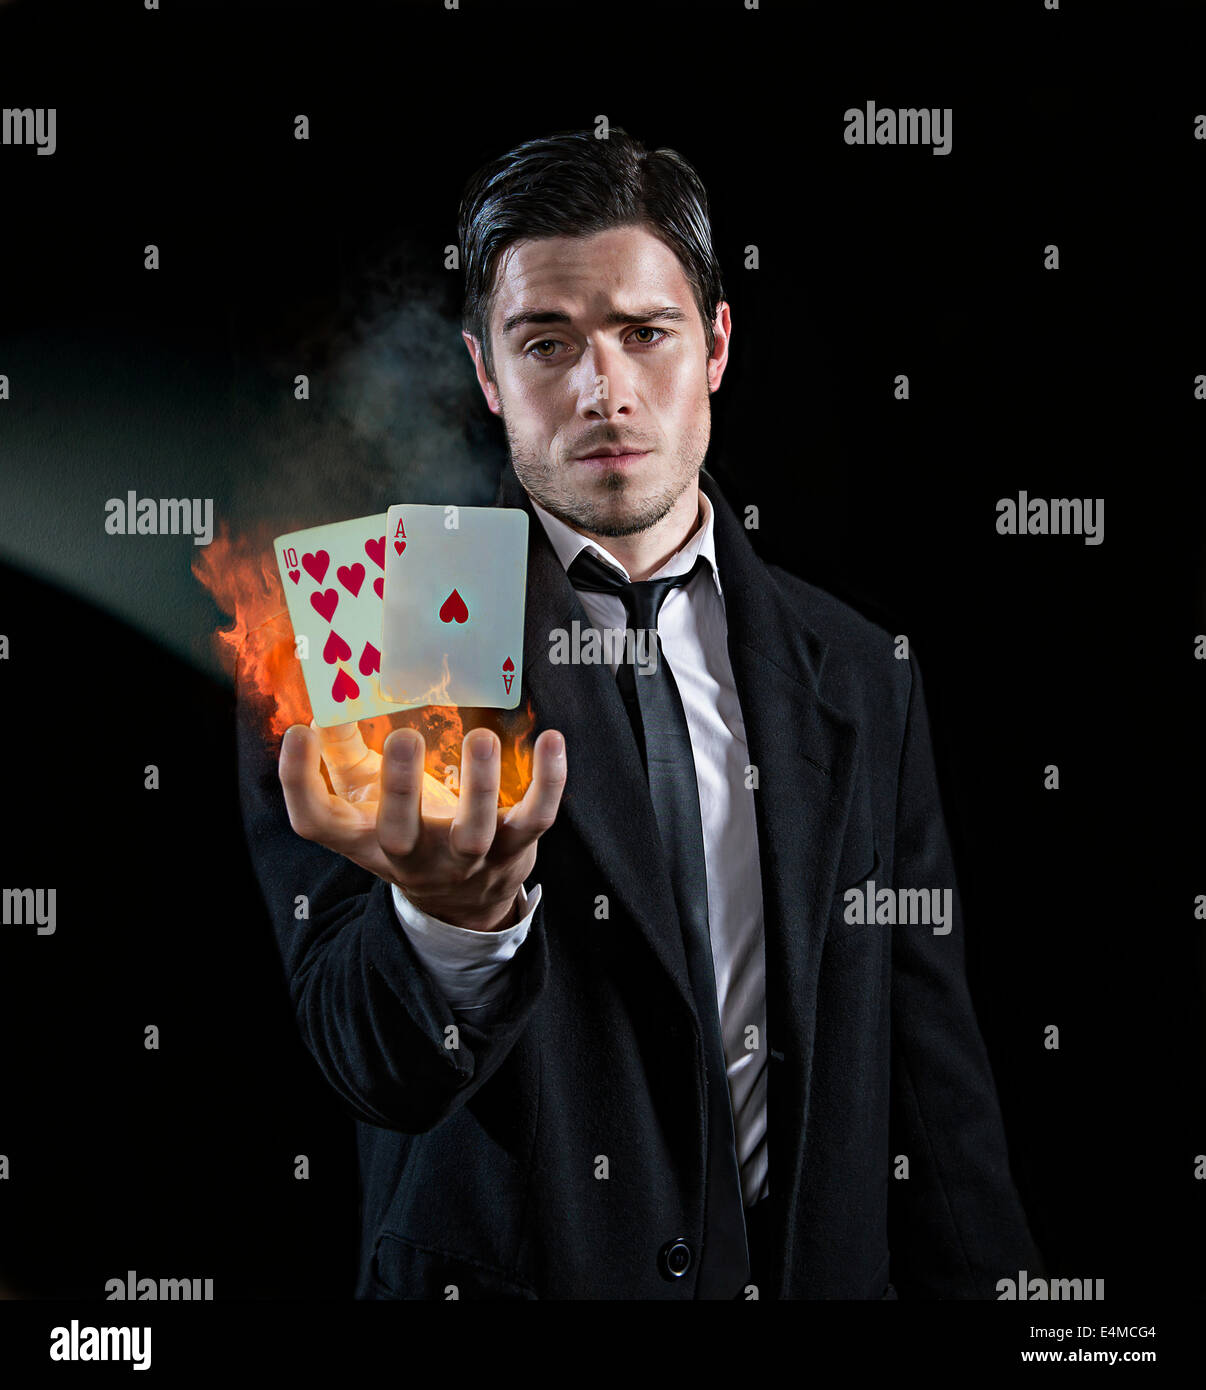 Magician producing black jack - Stock Image